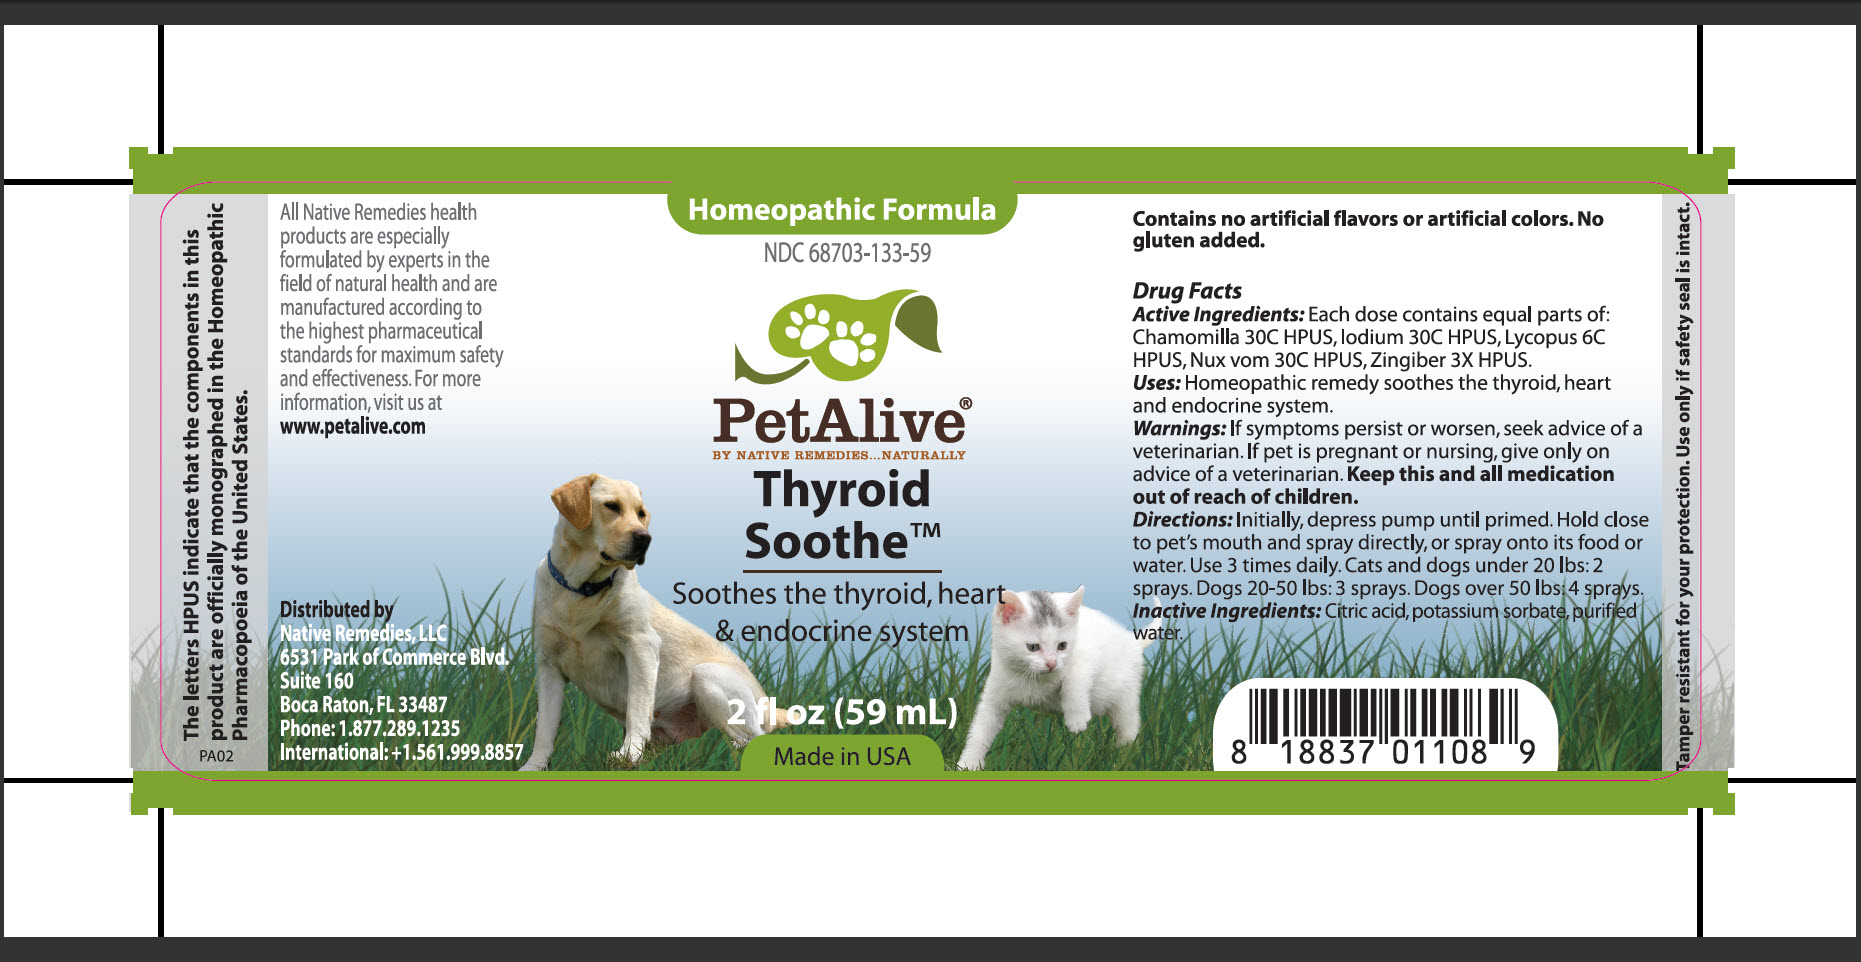 Thyroid Soothe (Chamomilla, Iodium, Lycopus, Nux Vom, Zingiber) Spray [Native Remedies, Llc]